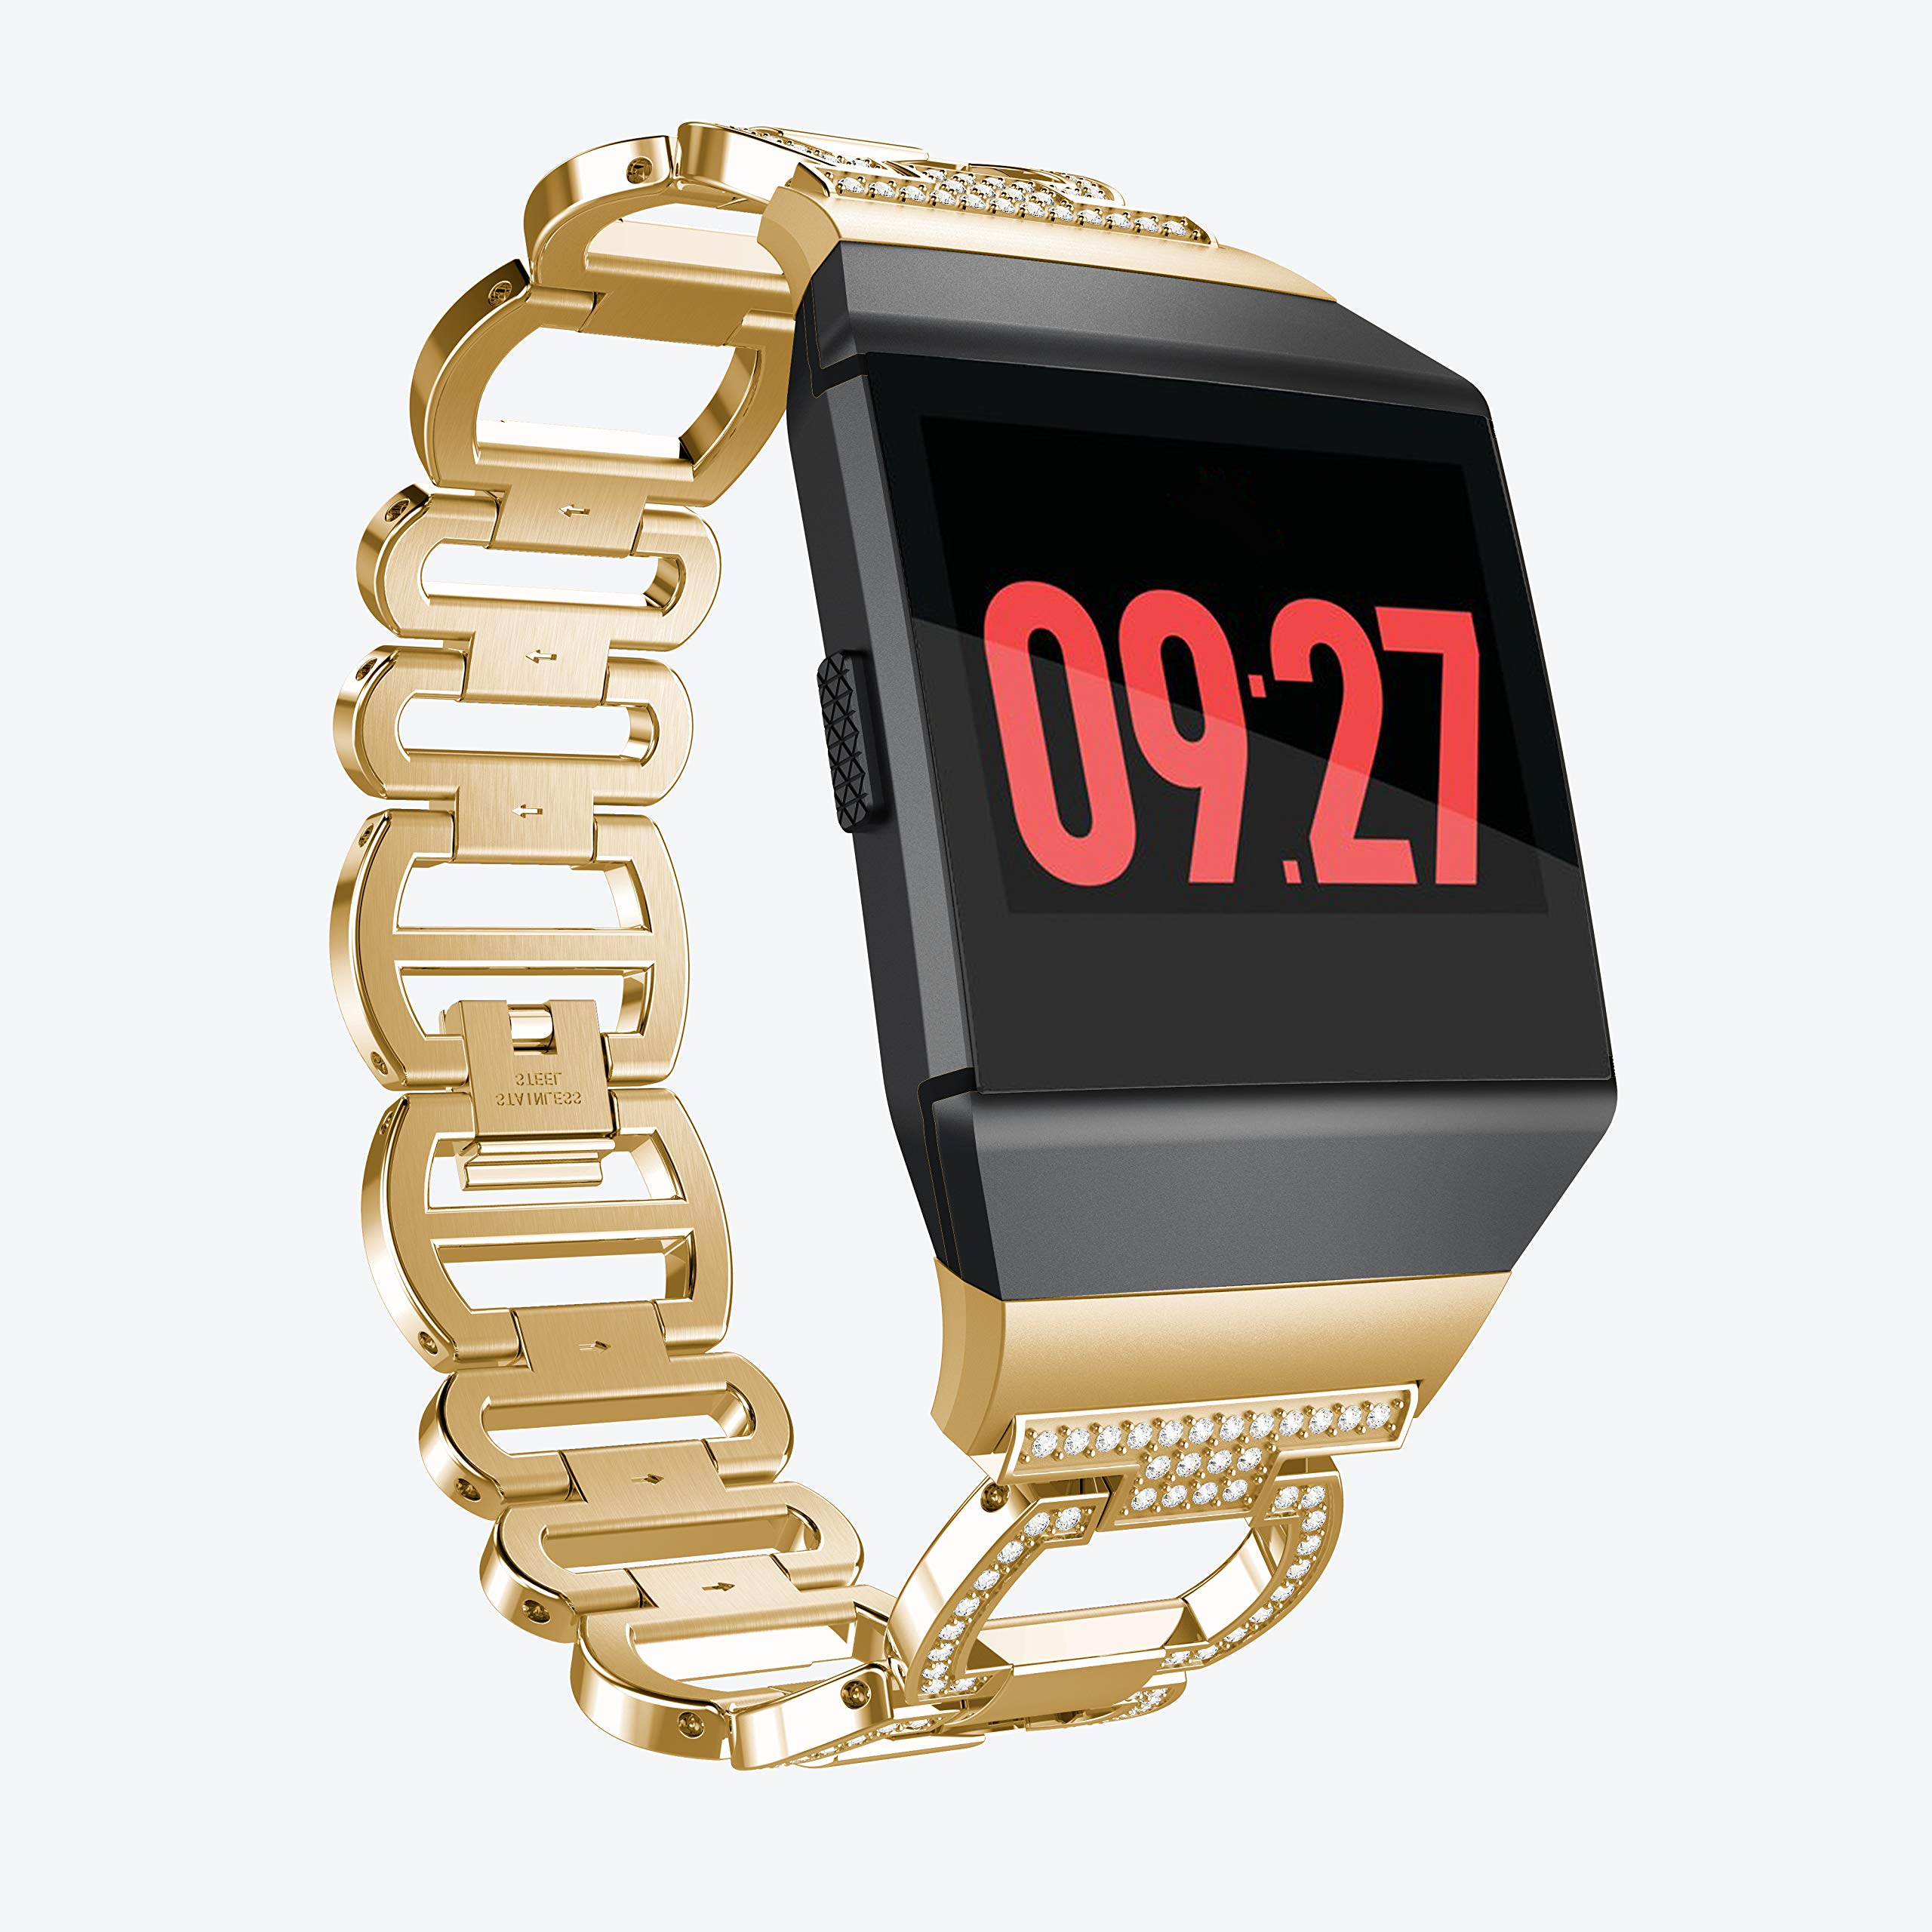 aczer-Y Fitbit Ionic Band Metal Accessories Small Large, Stainless Steel Replacement Band with Folding Clasp Strap for Fitbit Ionic Smart Watch Bands Wristband Women Men (H-Gold)